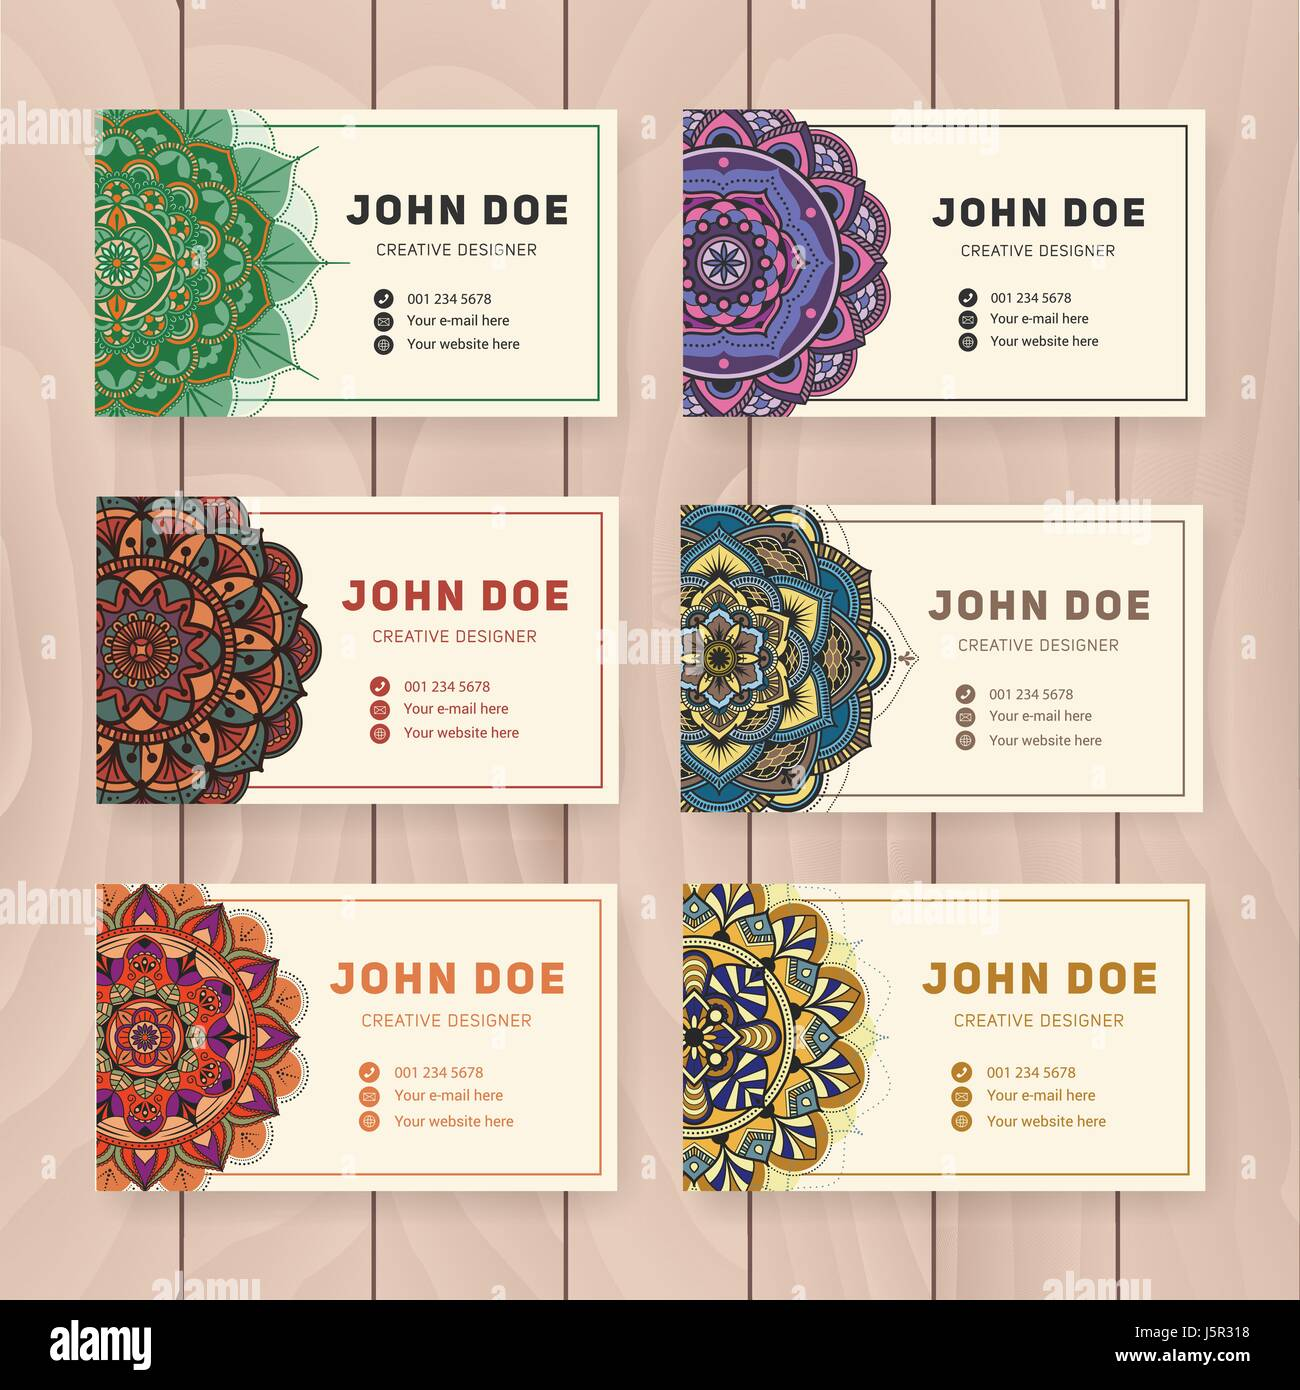 Creative useful business name card design vintage colored mandala creative useful business name card design vintage colored mandala design for personal name card visiting card or tag round ornament vector illustra reheart Gallery